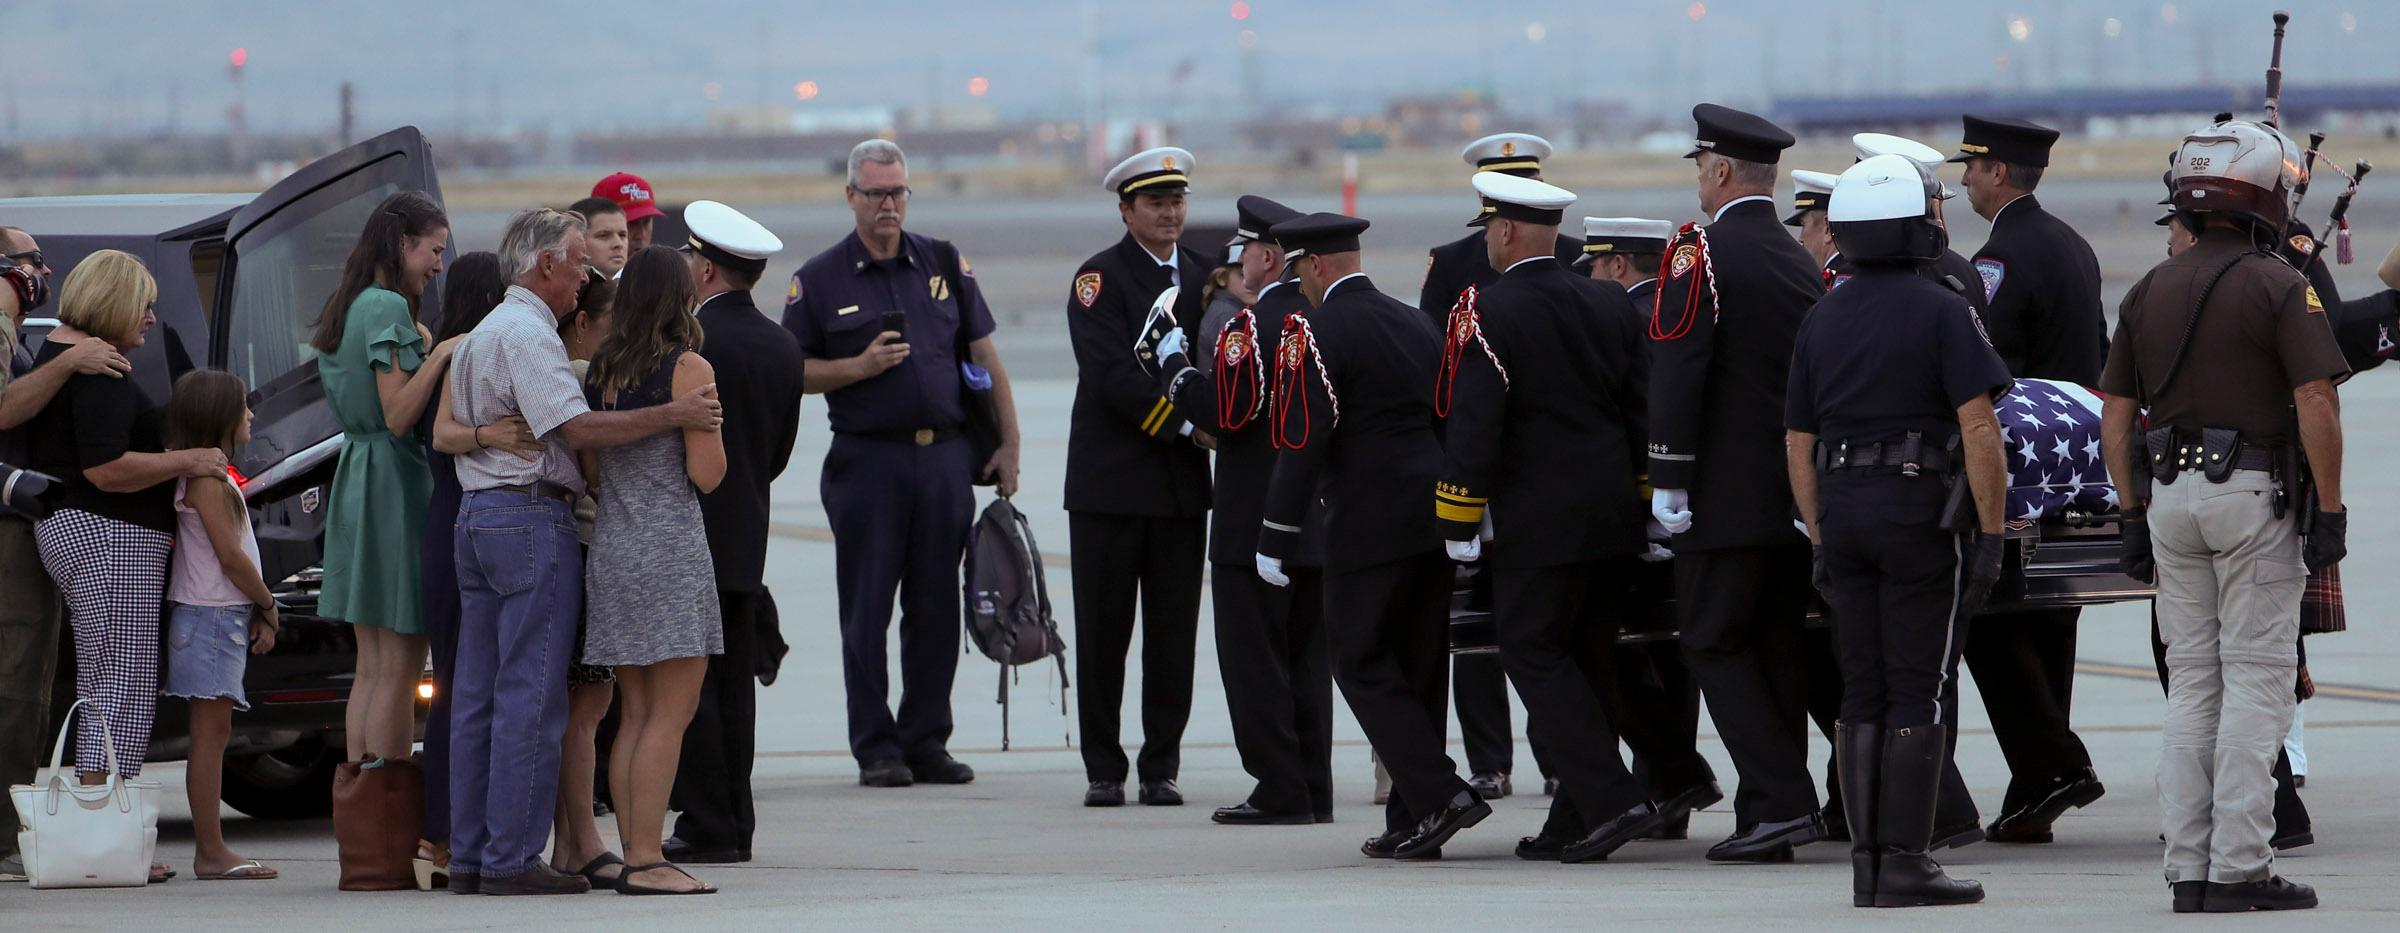 Members of the Draper City Fire Department and Unified Fire Authority Honor Guard carry the  casket of Draper Battalion Chief Matt Burchett to a hearse after being transported from California to Utah in a C130-J by the California Air National Guard. The C130-J landed at the Utah Air National Guard Base in Salt Lake City on Wednesday, Aug. 15, 2018. Burchett was killed while fighting the Mendocino Complex Fire north of San Francisco.